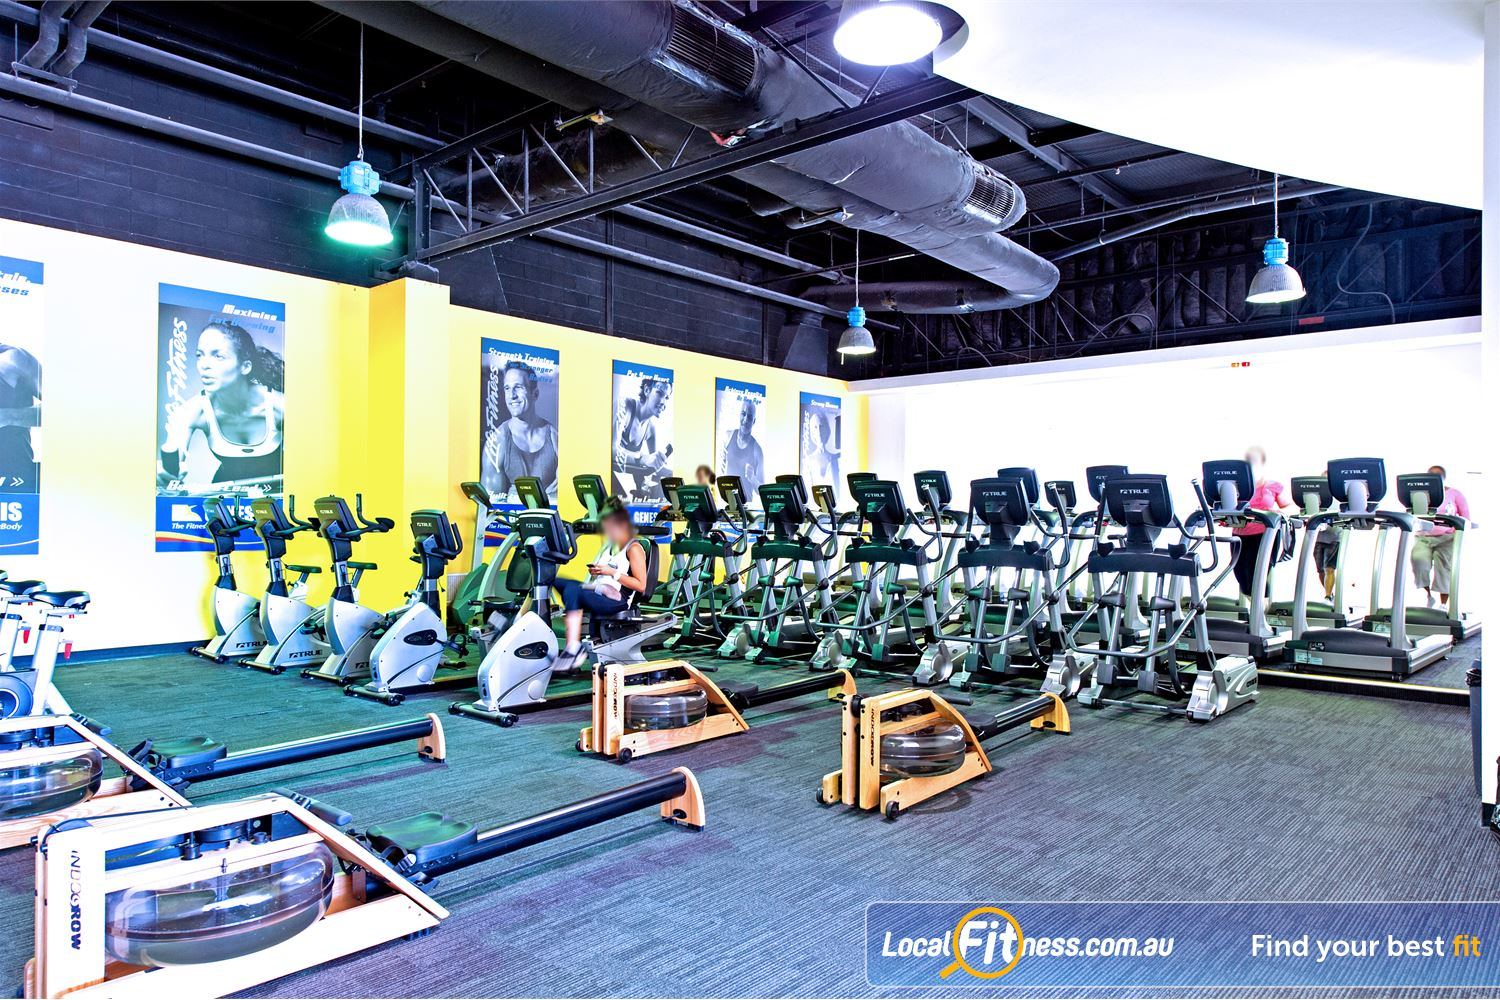 Vibe Health Clubs Near Doonside Our Blacktown gym has rows of machines so you'll never have to wait.